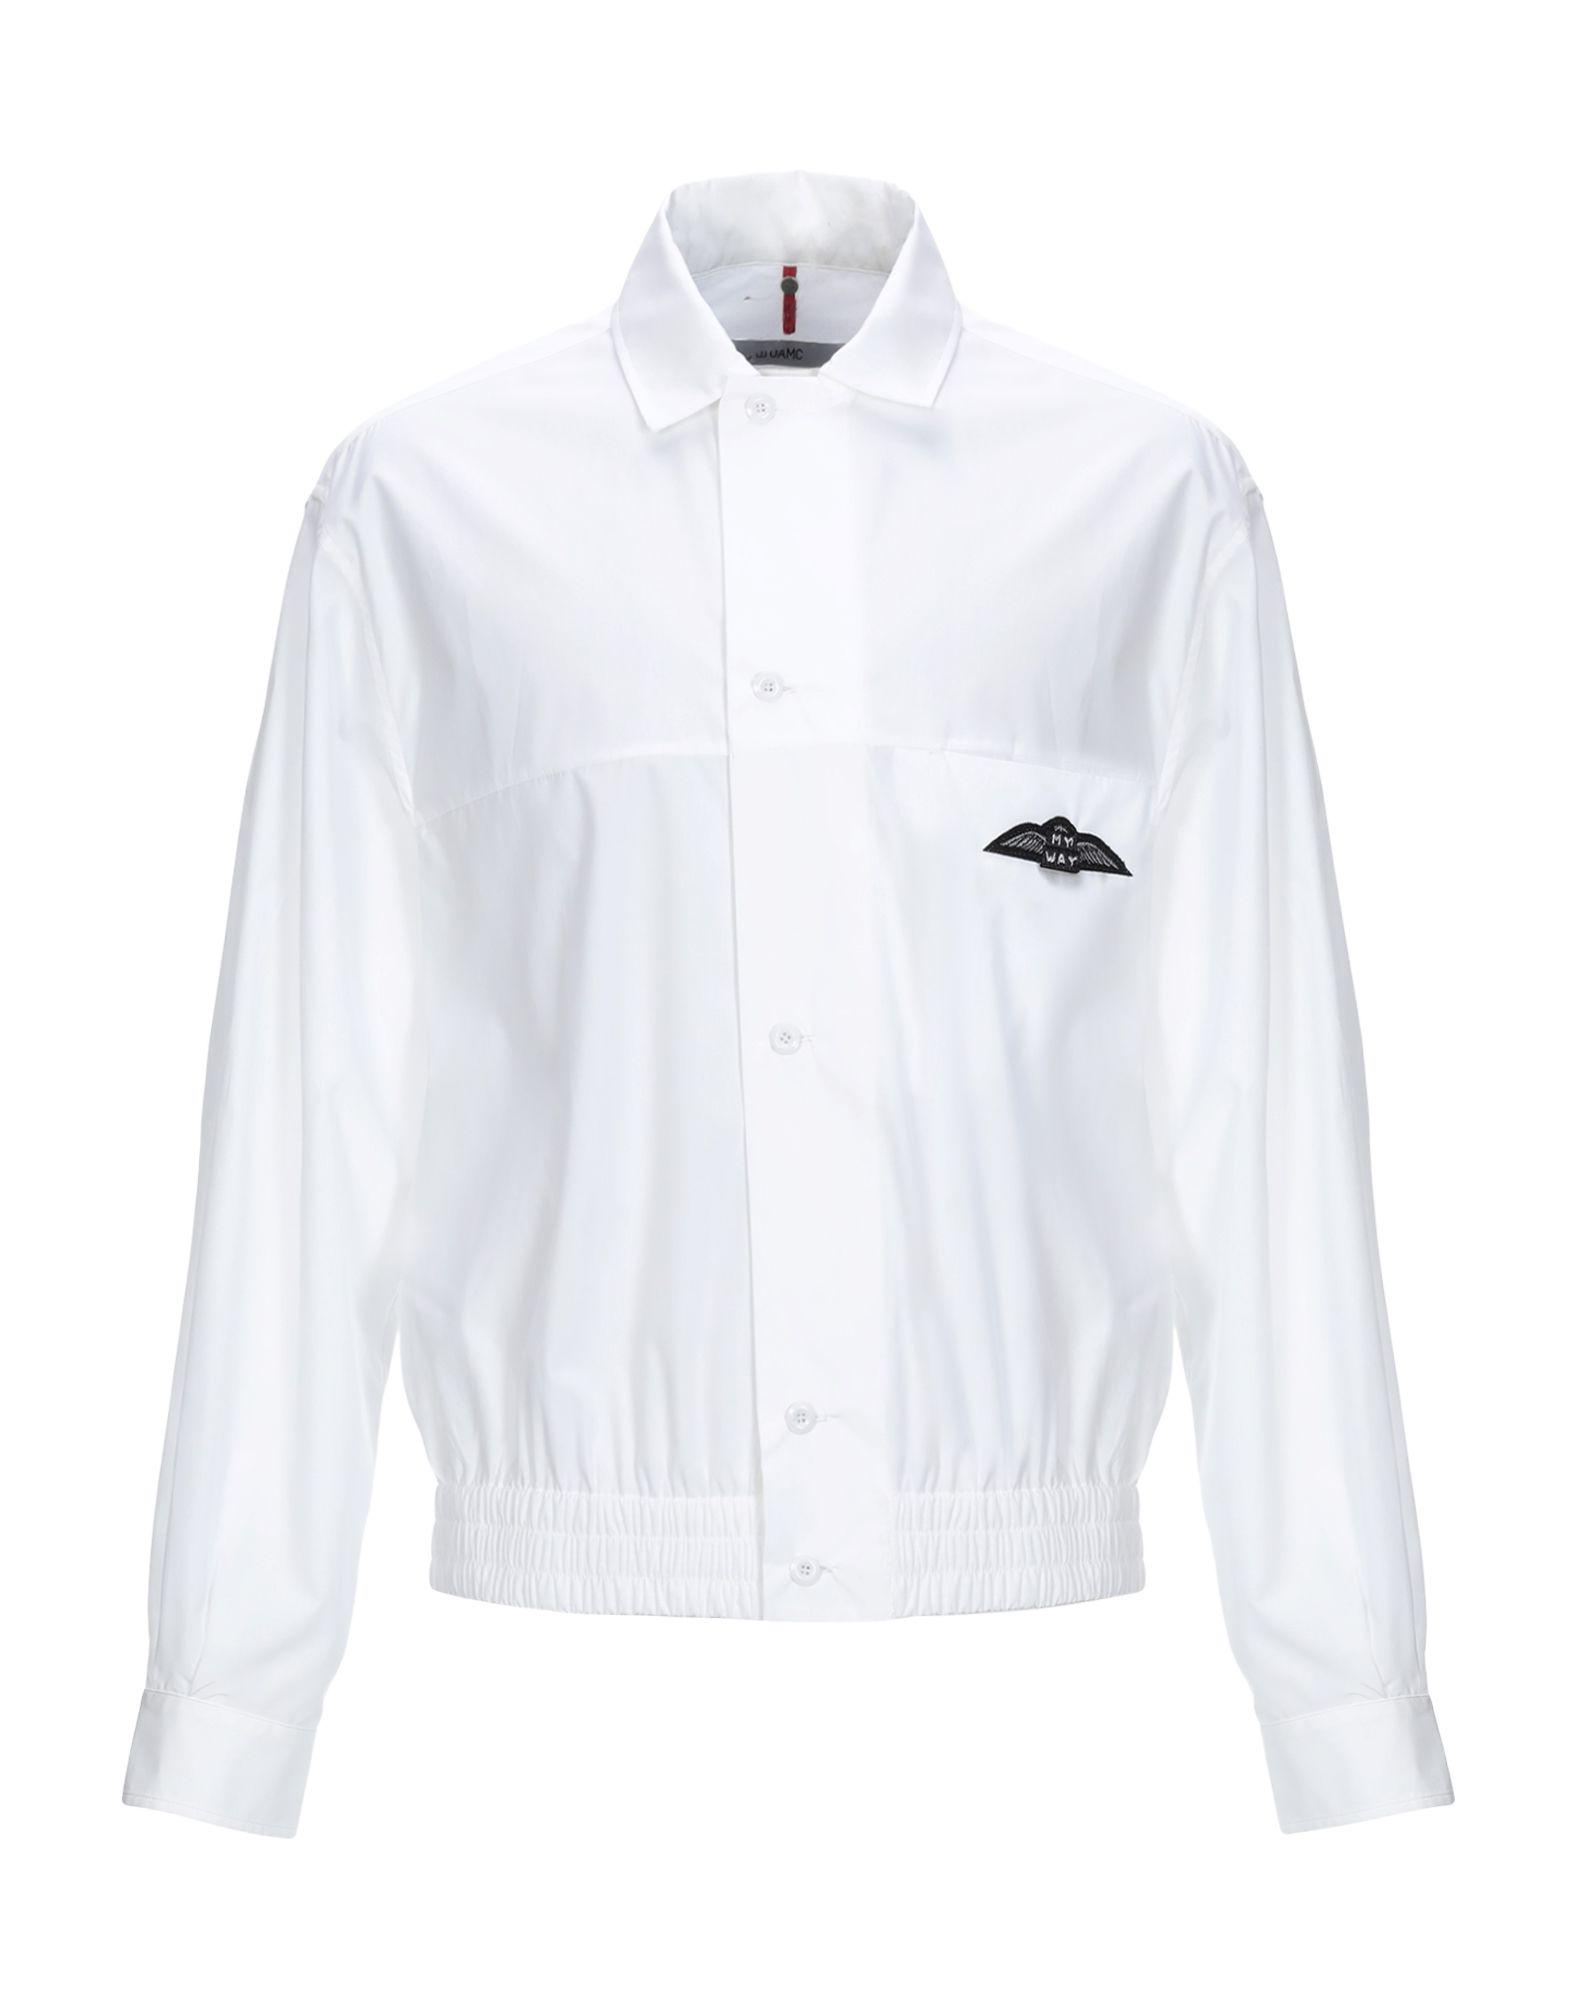 30a4dbac2b61d Lyst - OAMC Shirt in White for Men